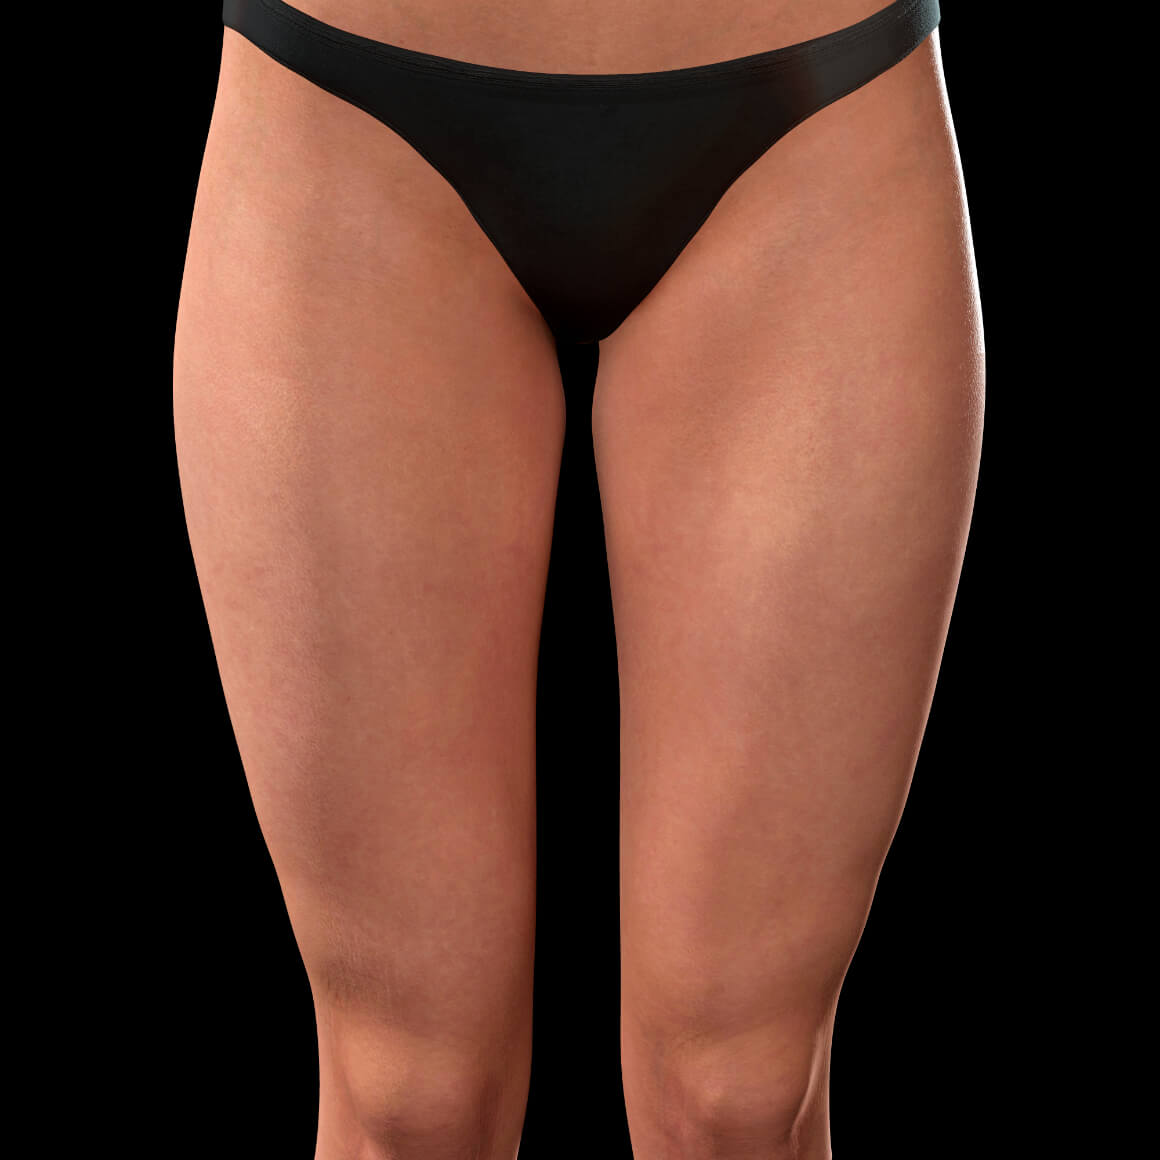 Front thighs of a female patient from Clinique Chloé after TightSculpting laser treatments for cellulite treatment